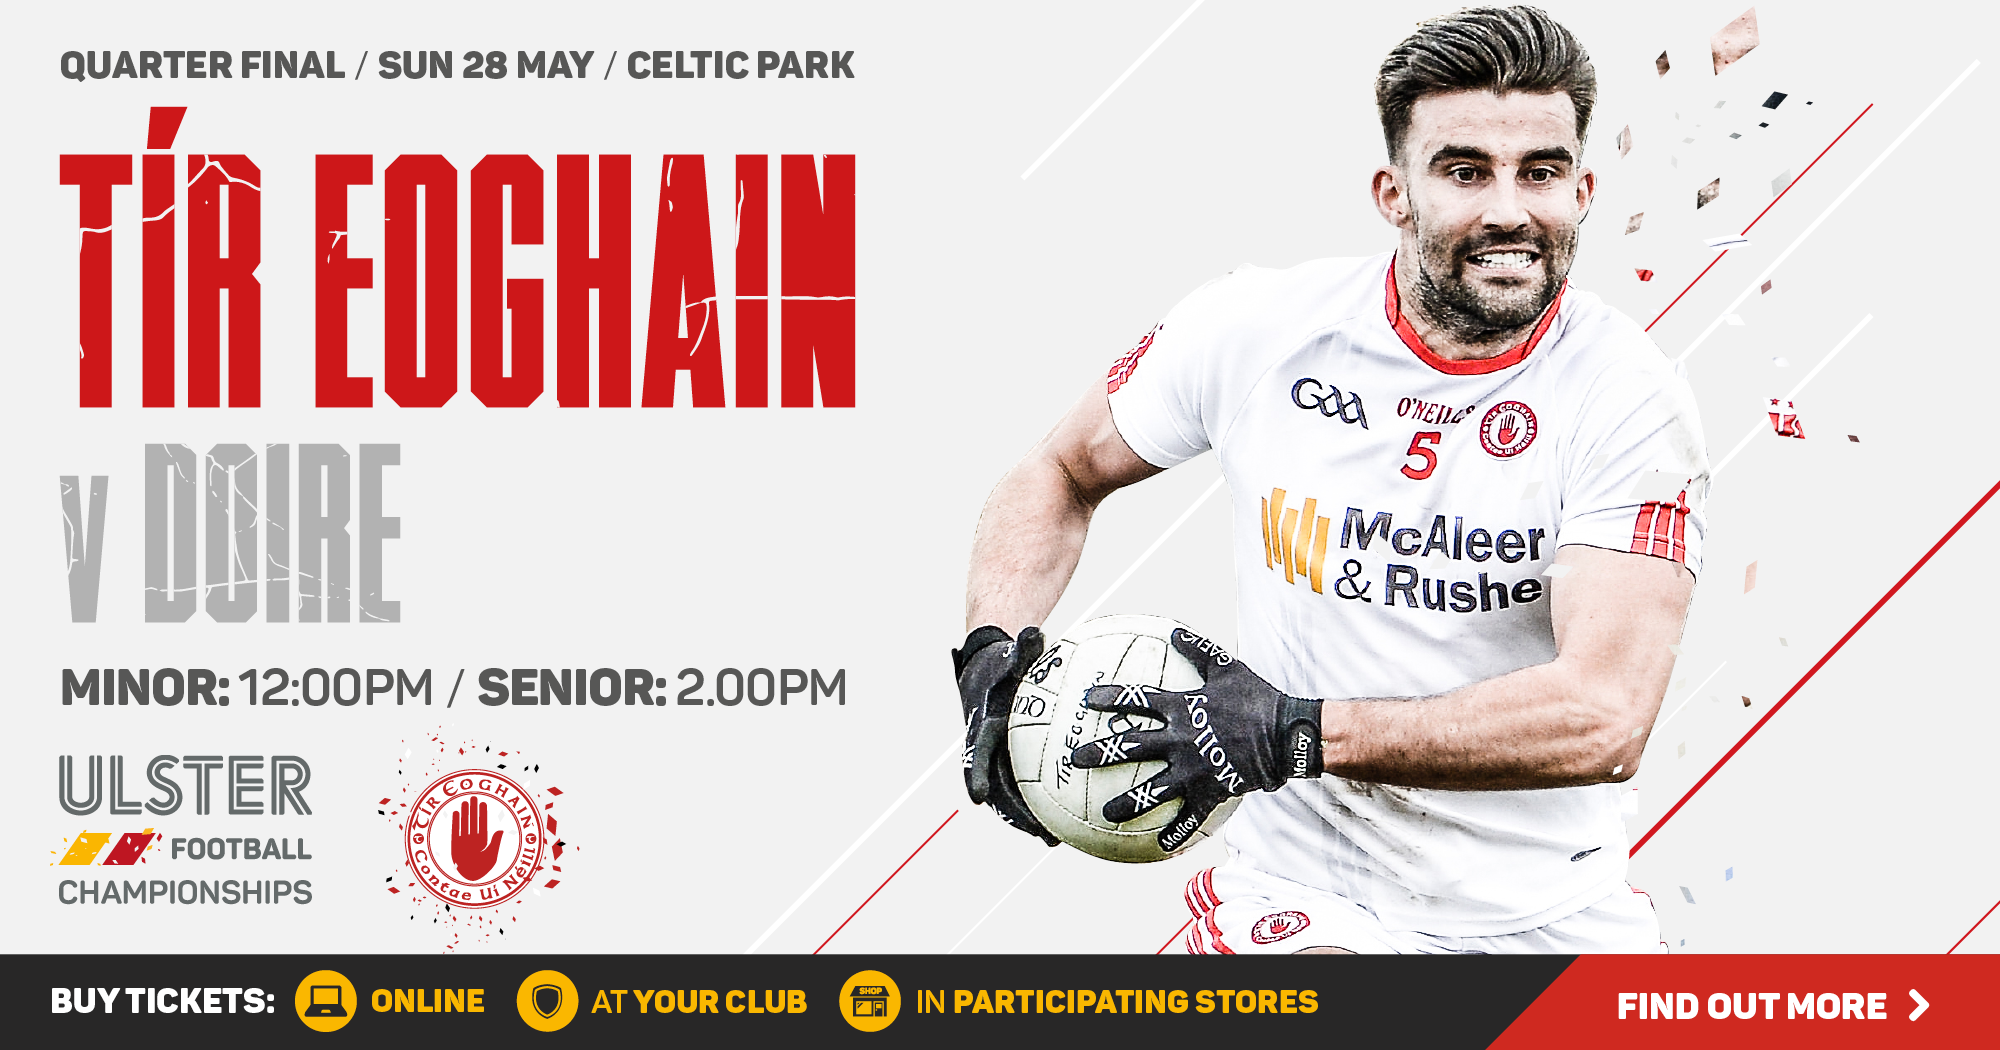 Ulster Football Championship 2017 - Quarter Final - Derry v Tyrone